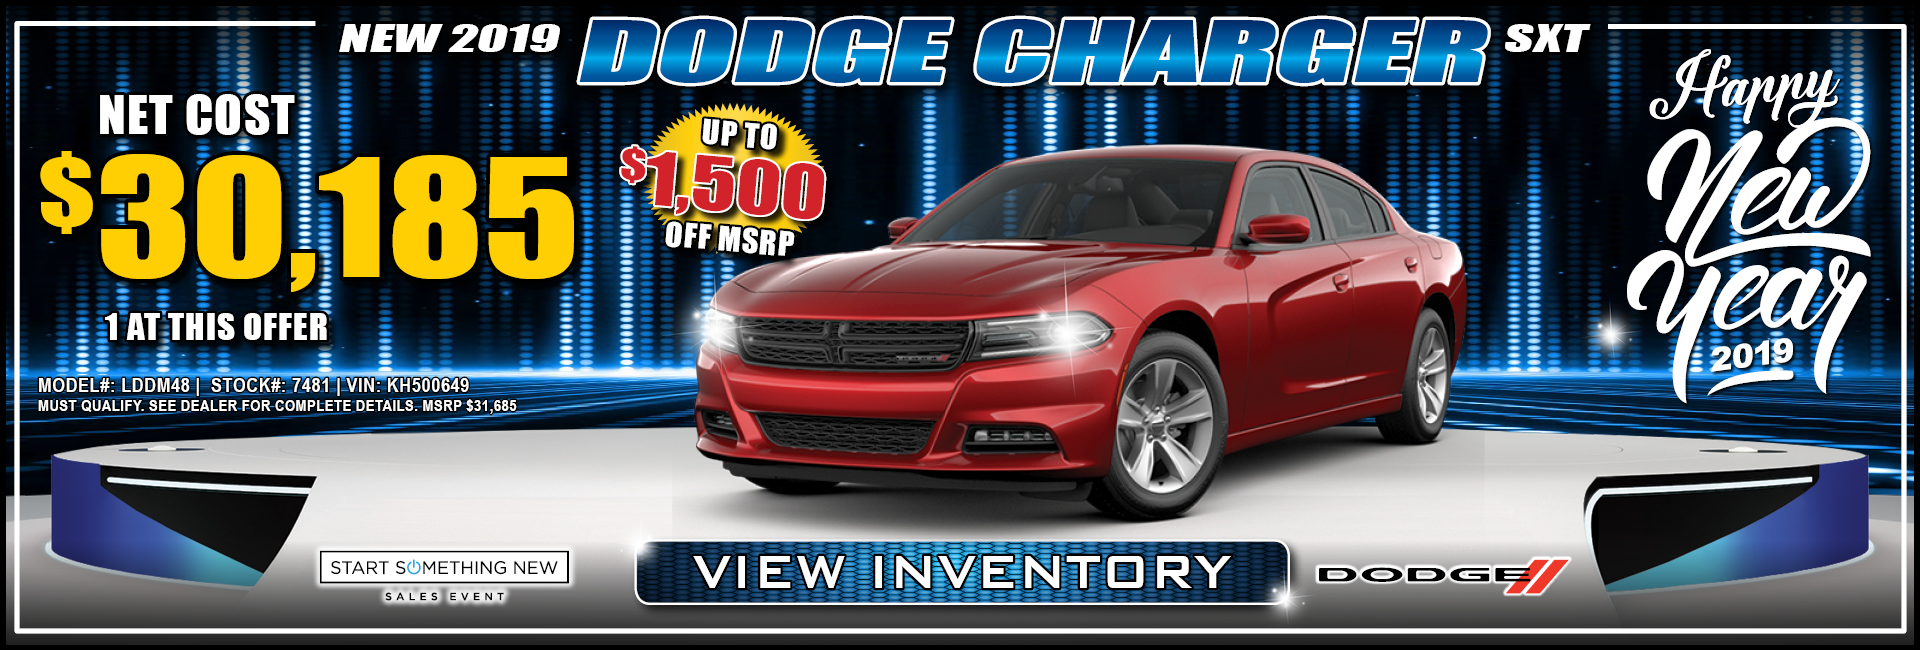 Dodge Charger $30,185